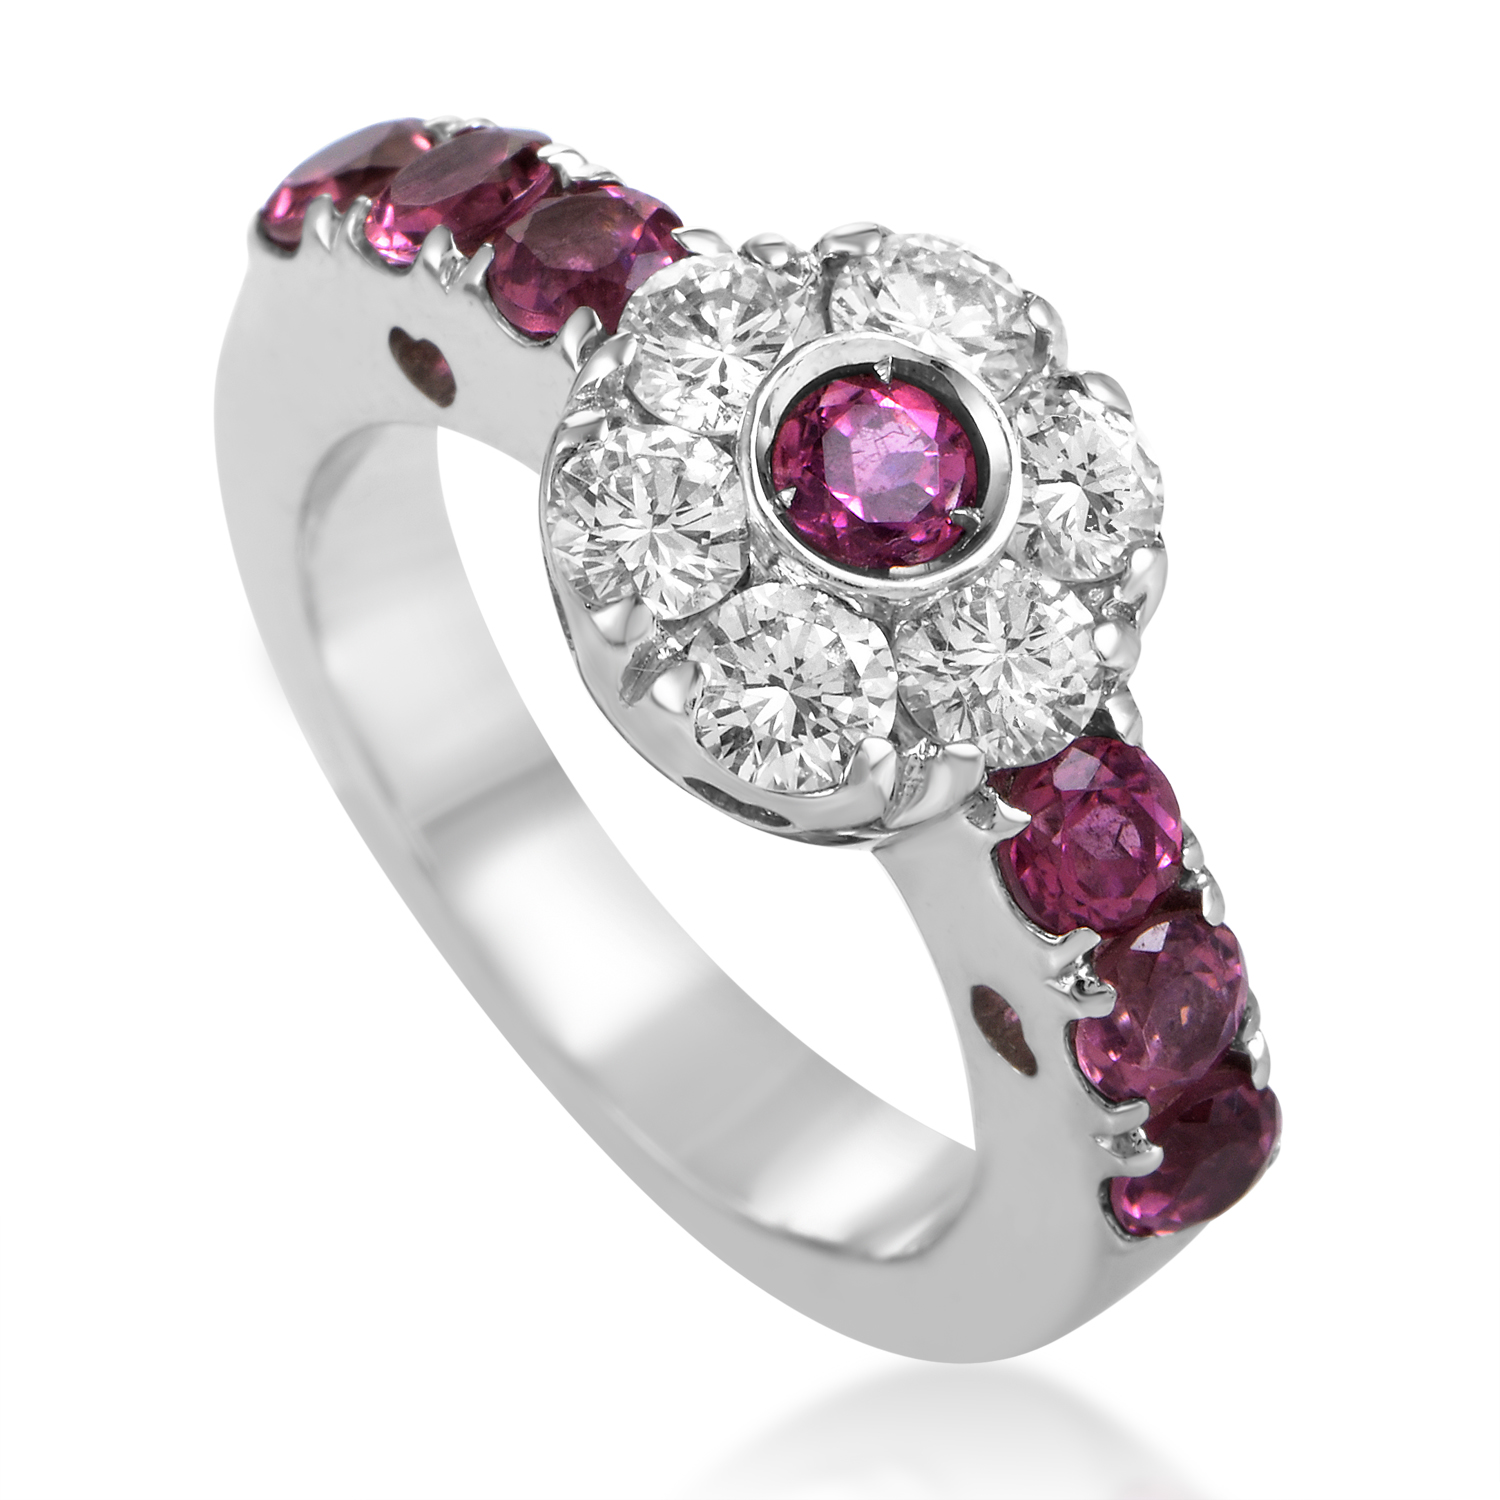 Fiori Women's 18K White Gold Diamond & Pink Sapphire Flower Ring